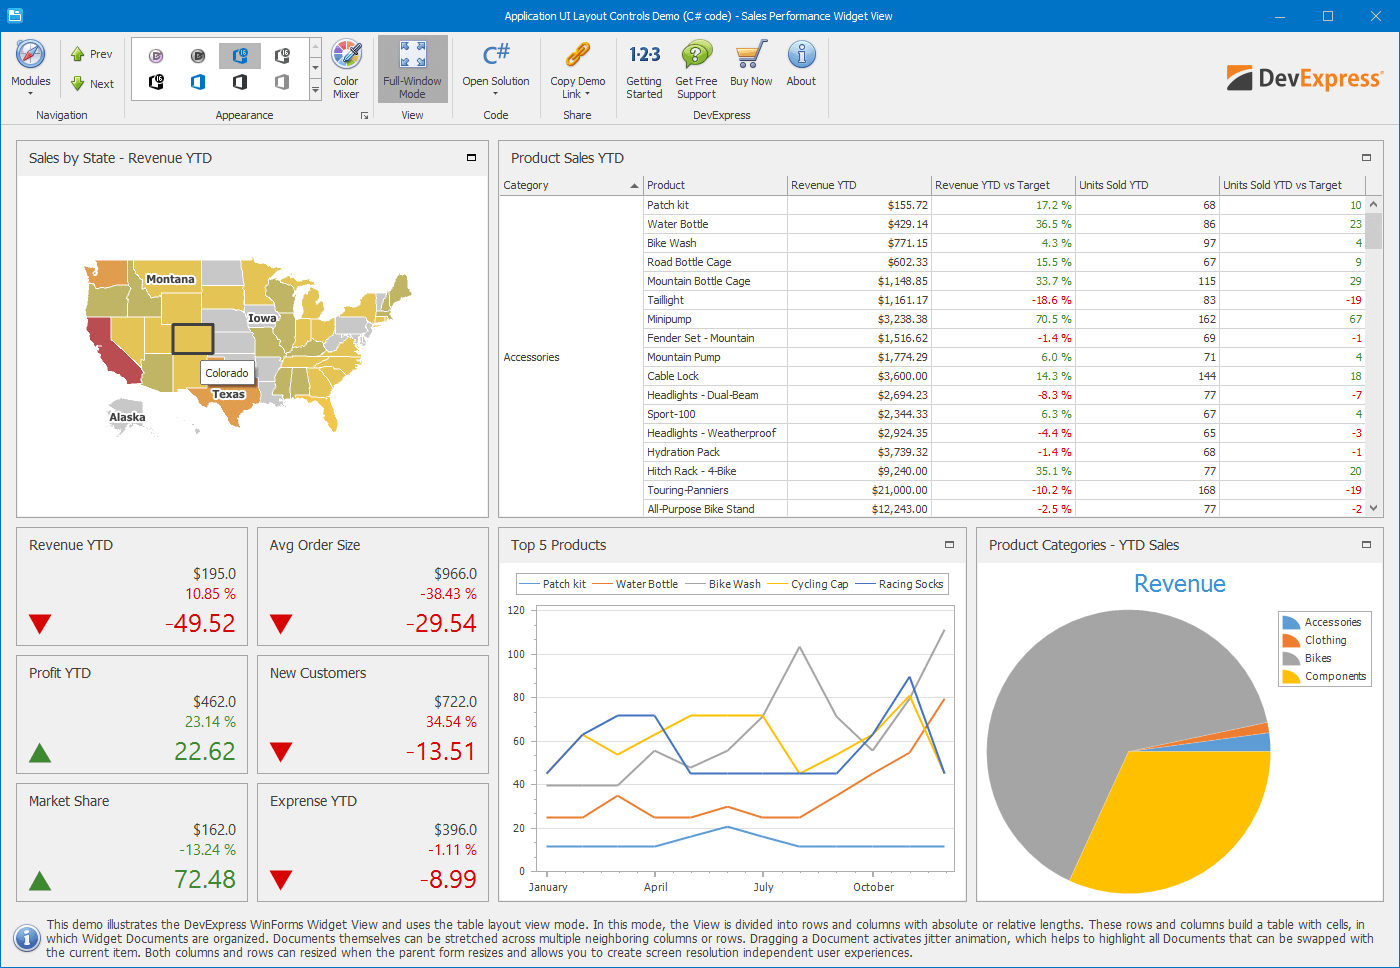 Sales Performance Widget View